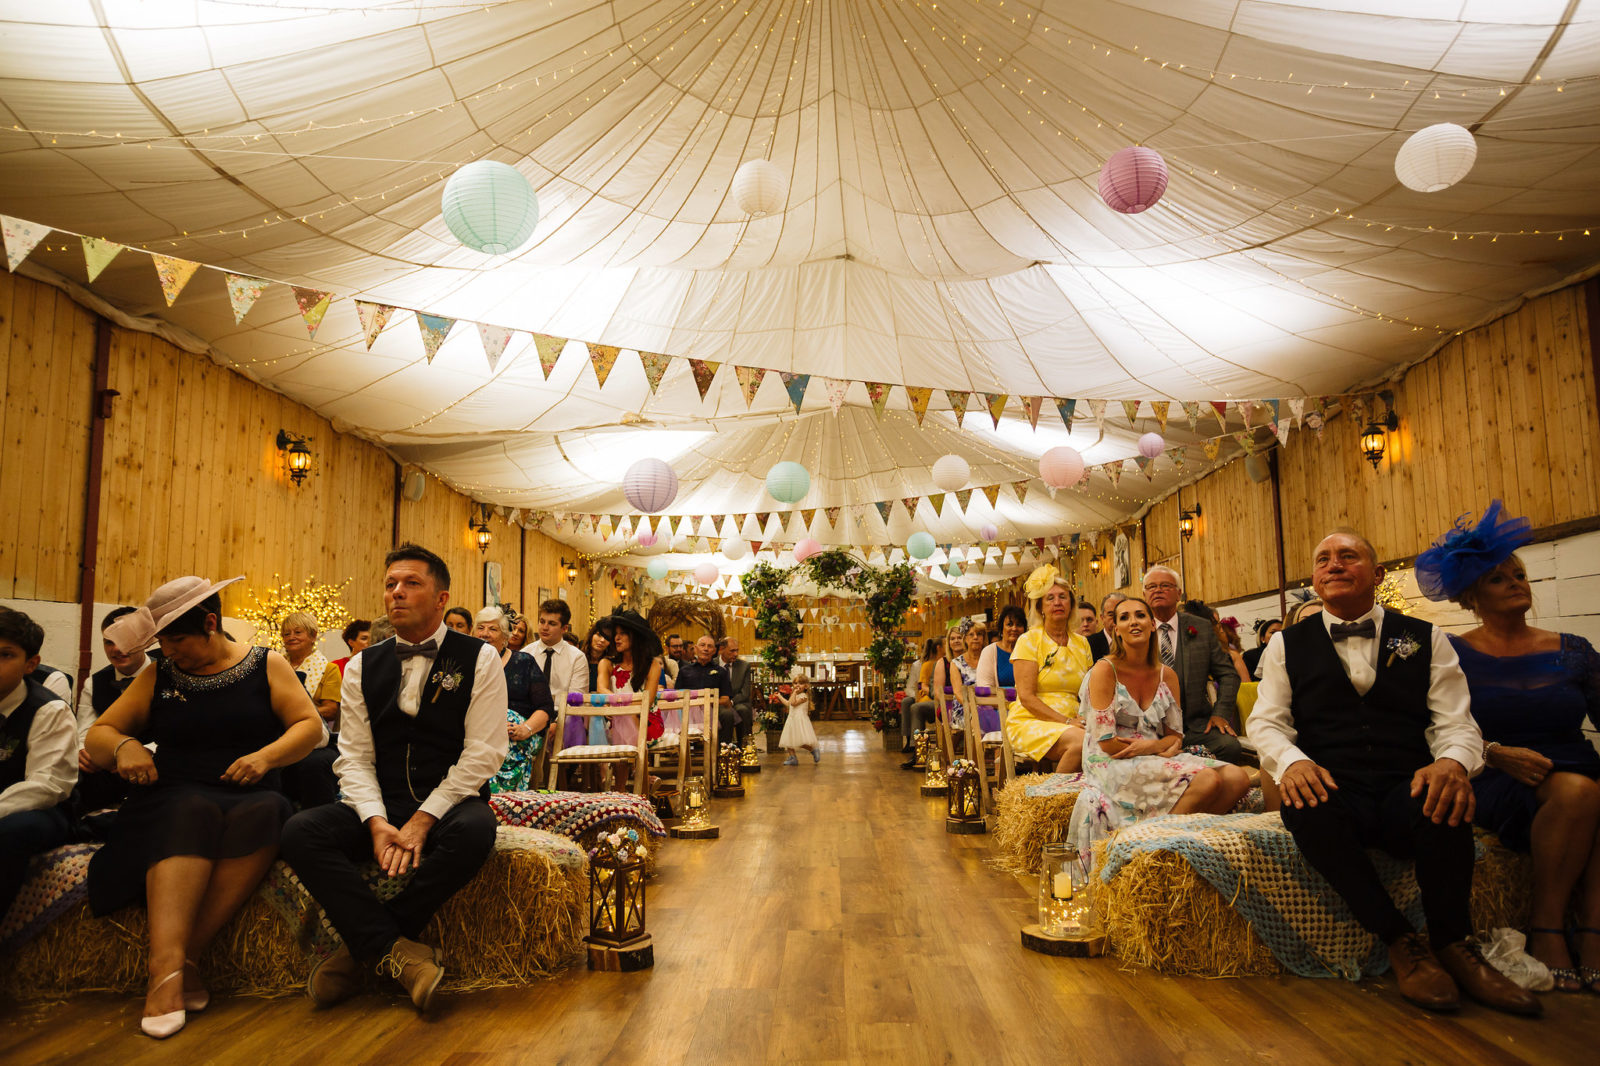 The Wellbeing Farm wedding venue